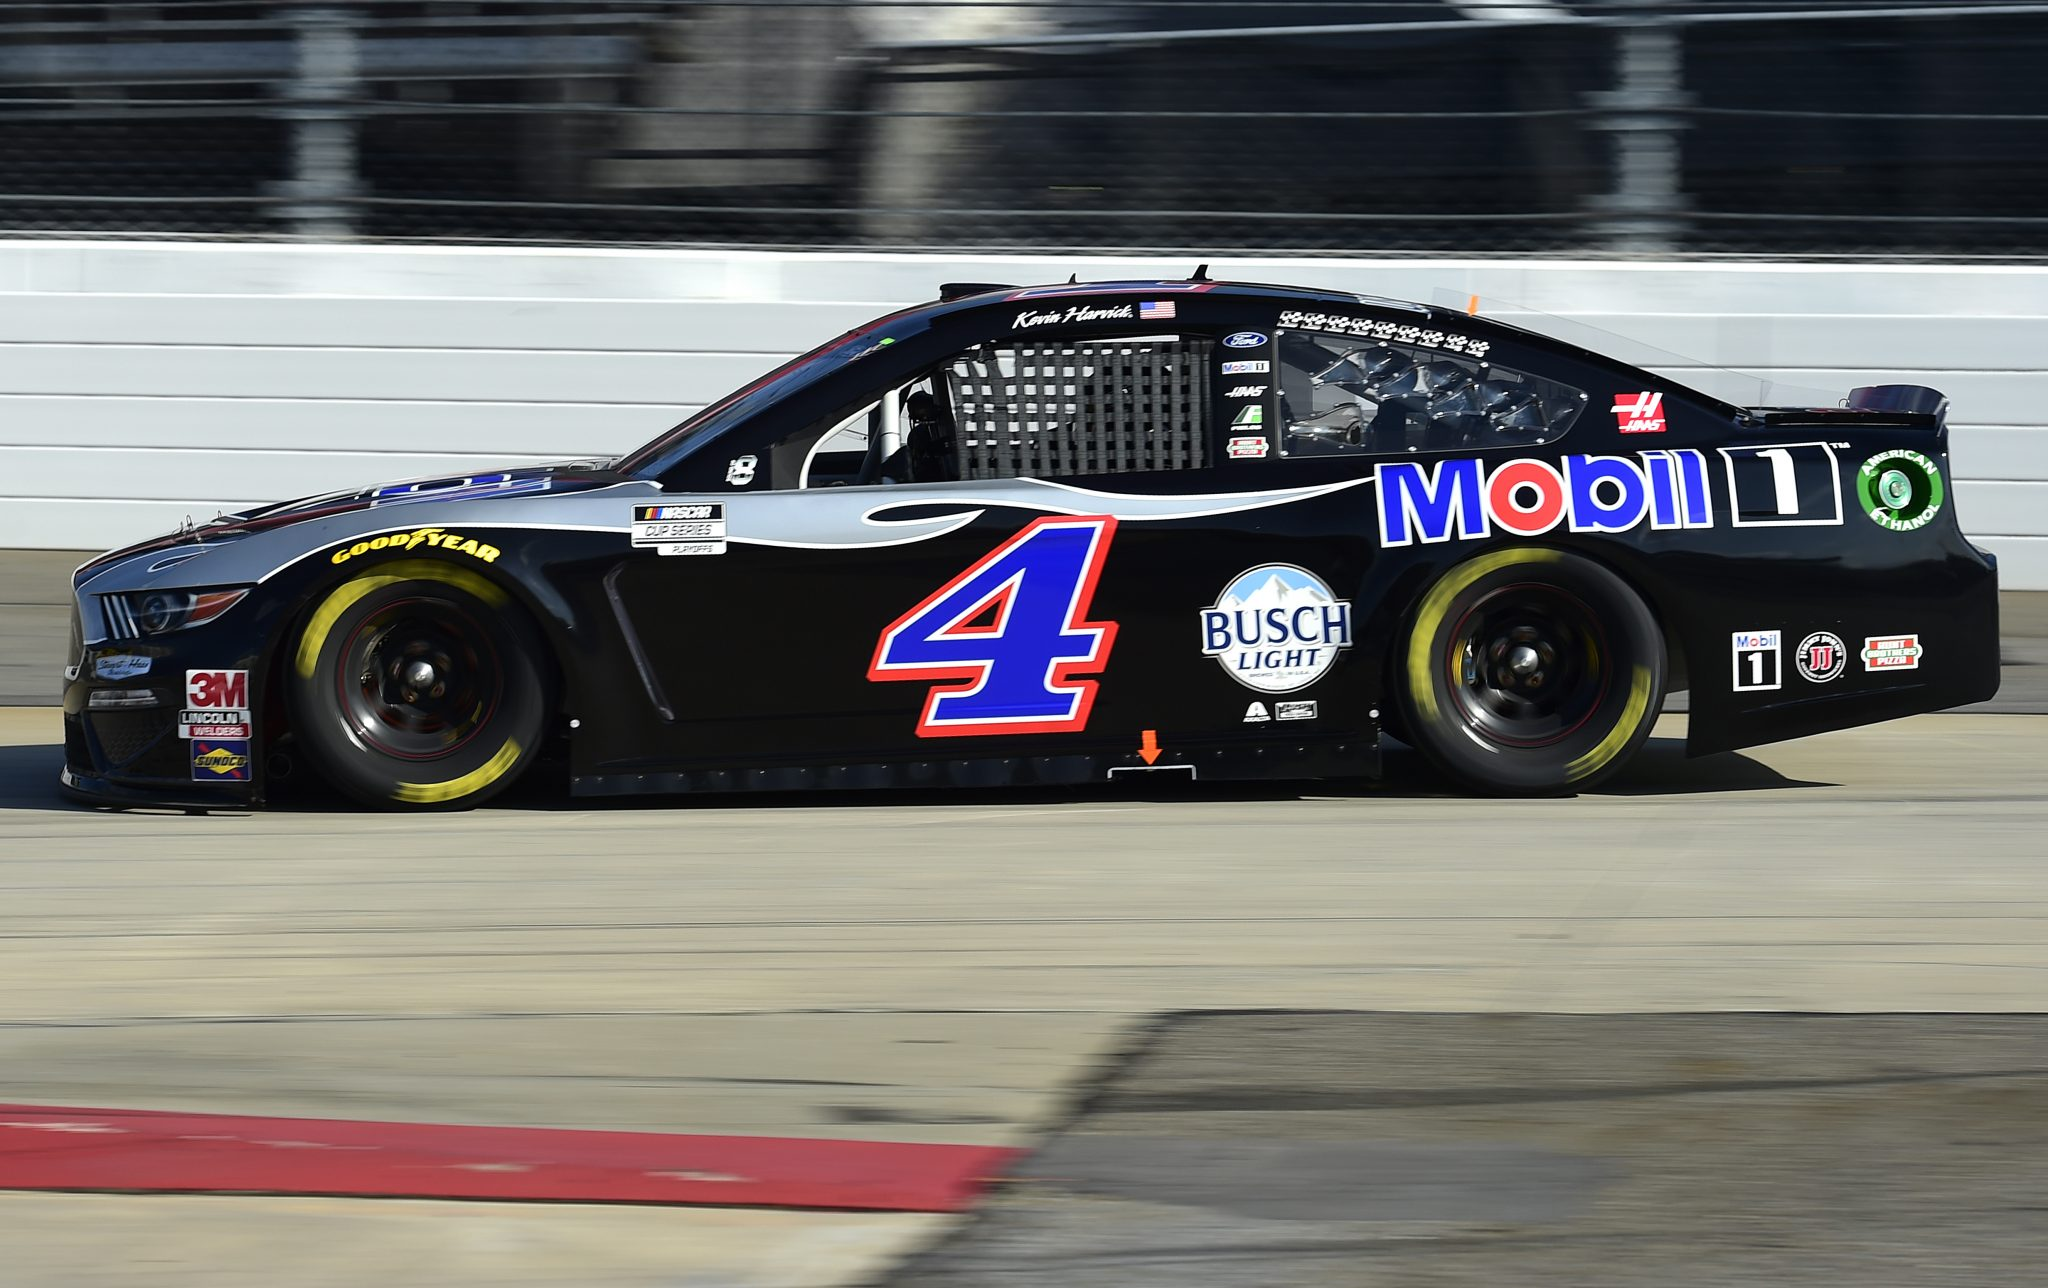 MARTINSVILLE, VIRGINIA - NOVEMBER 01: Kevin Harvick, driver of the #4 Mobil 1 Ford, drives during the NASCAR Cup Series Xfinity 500 at Martinsville Speedway on November 01, 2020 in Martinsville, Virginia. (Photo by Jared C. Tilton/Getty Images) | Getty Images